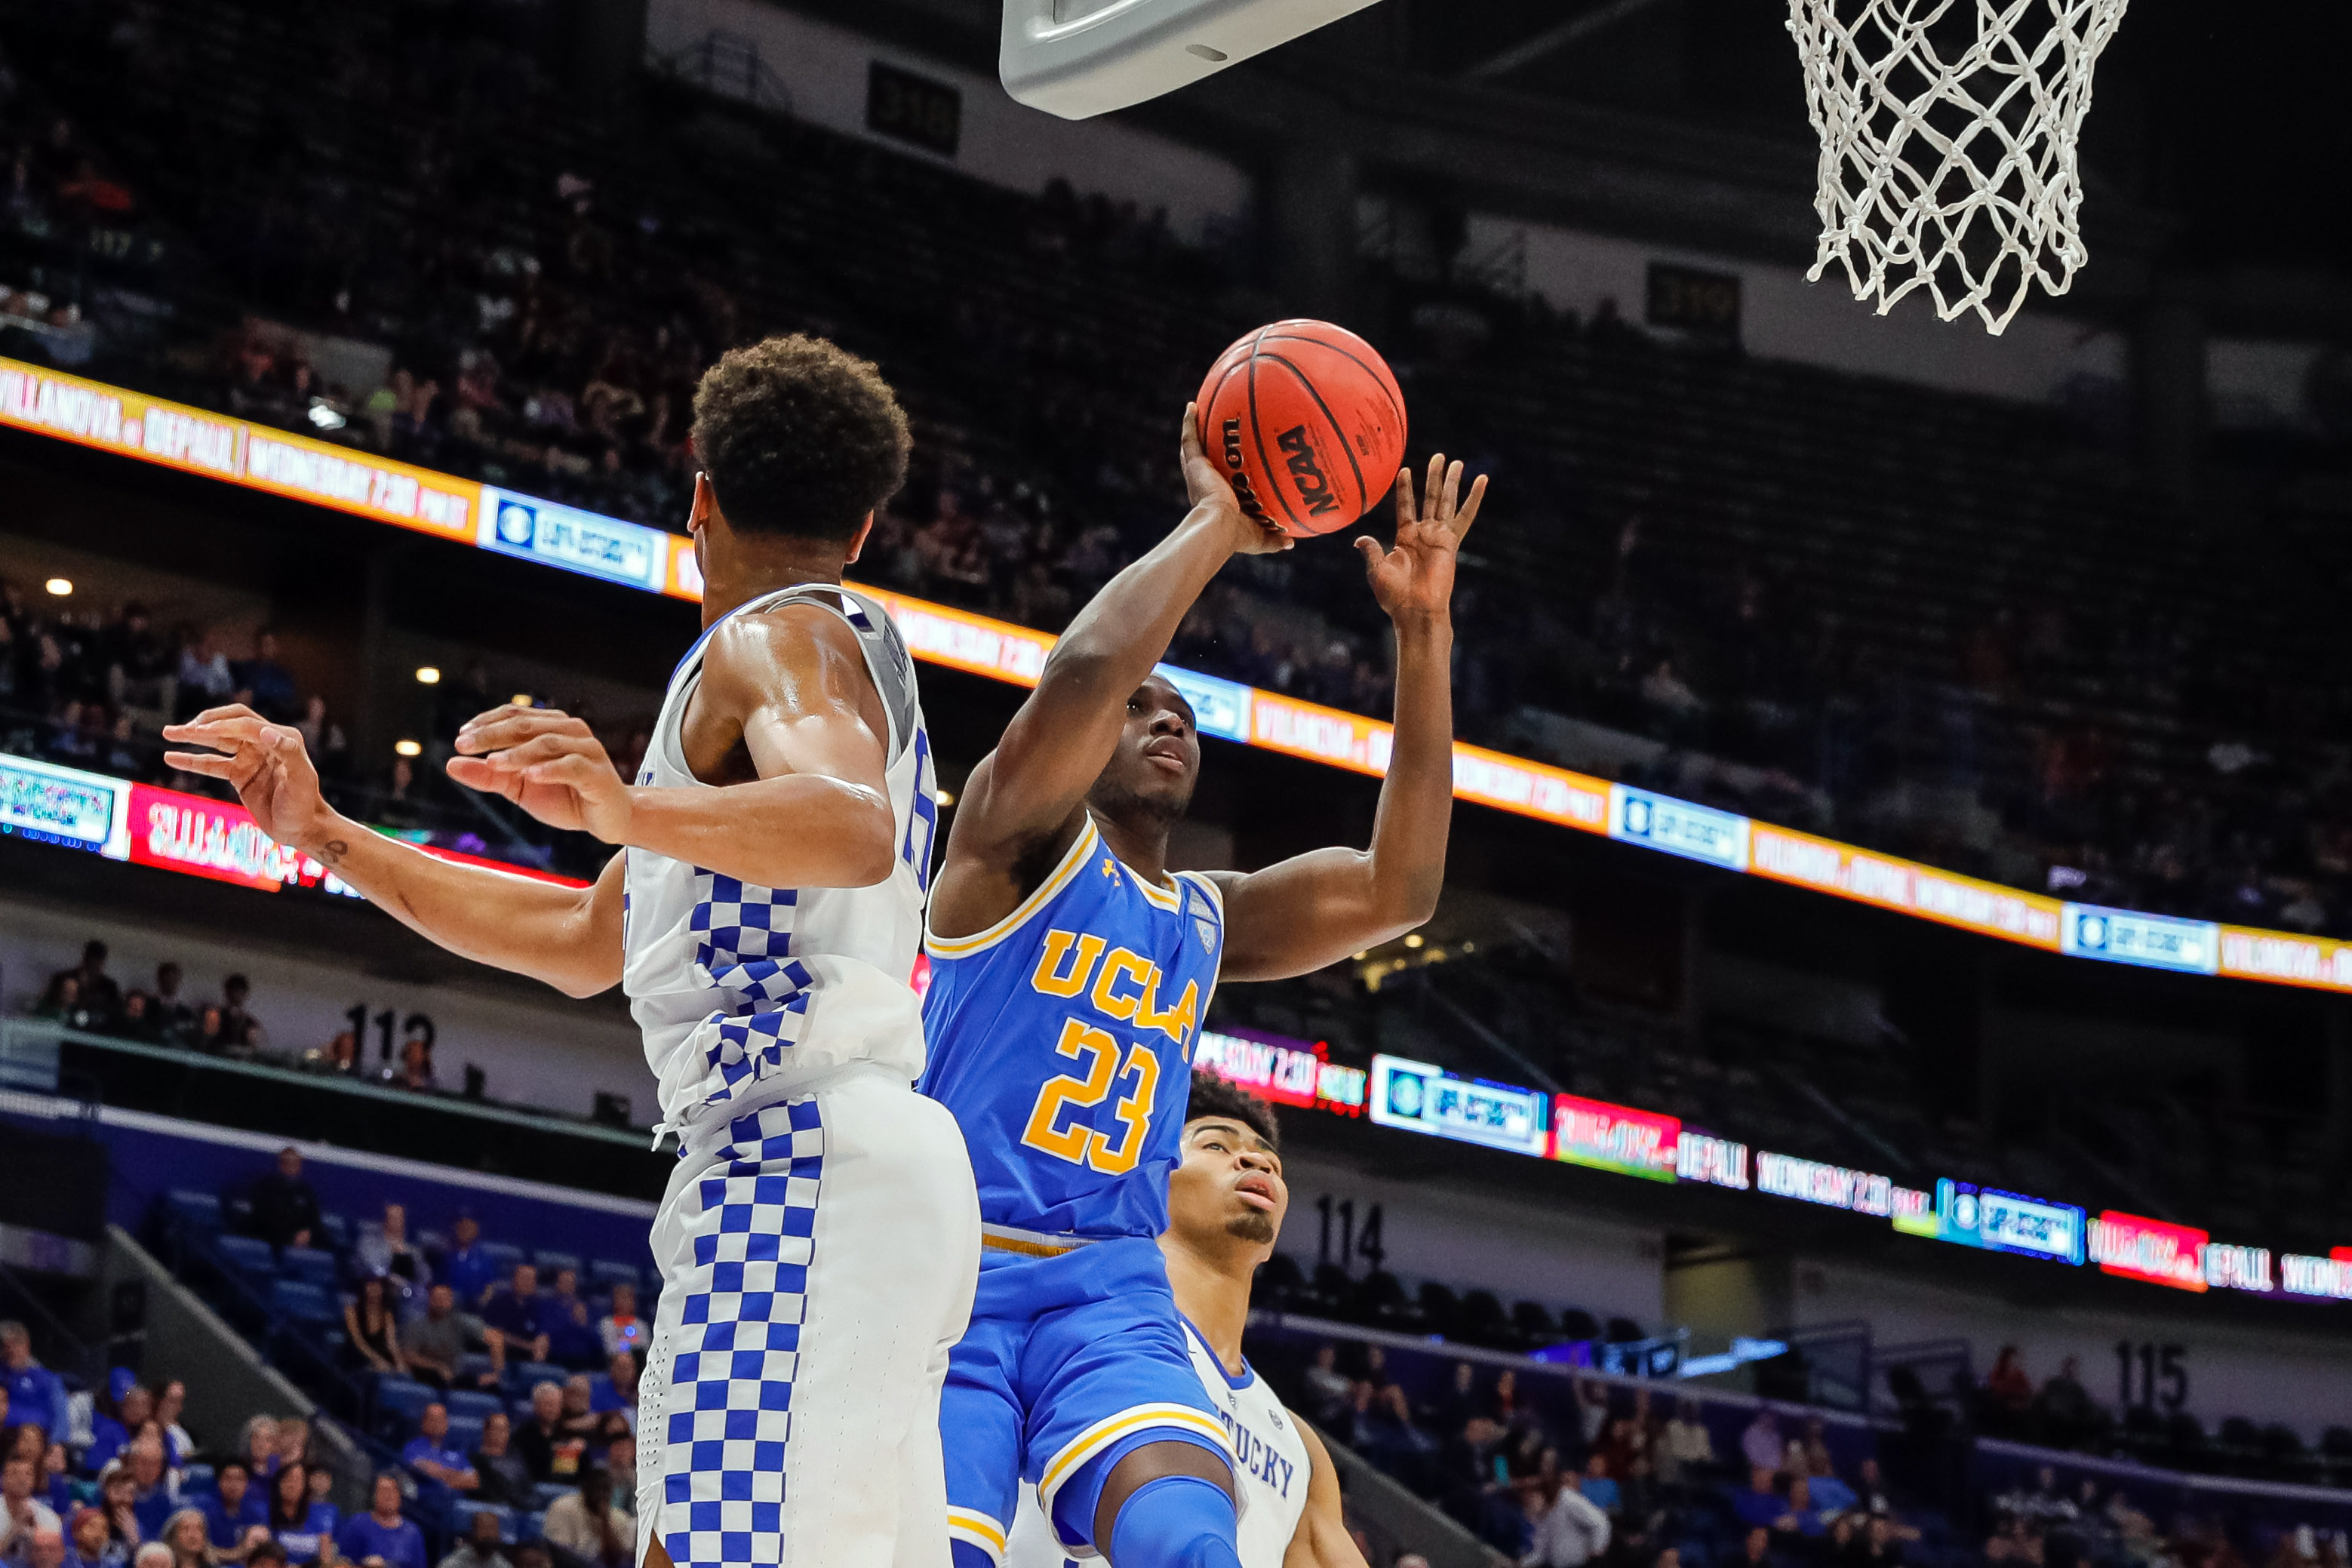 a look at the 2018 ucla basketball non conference schedule bruins